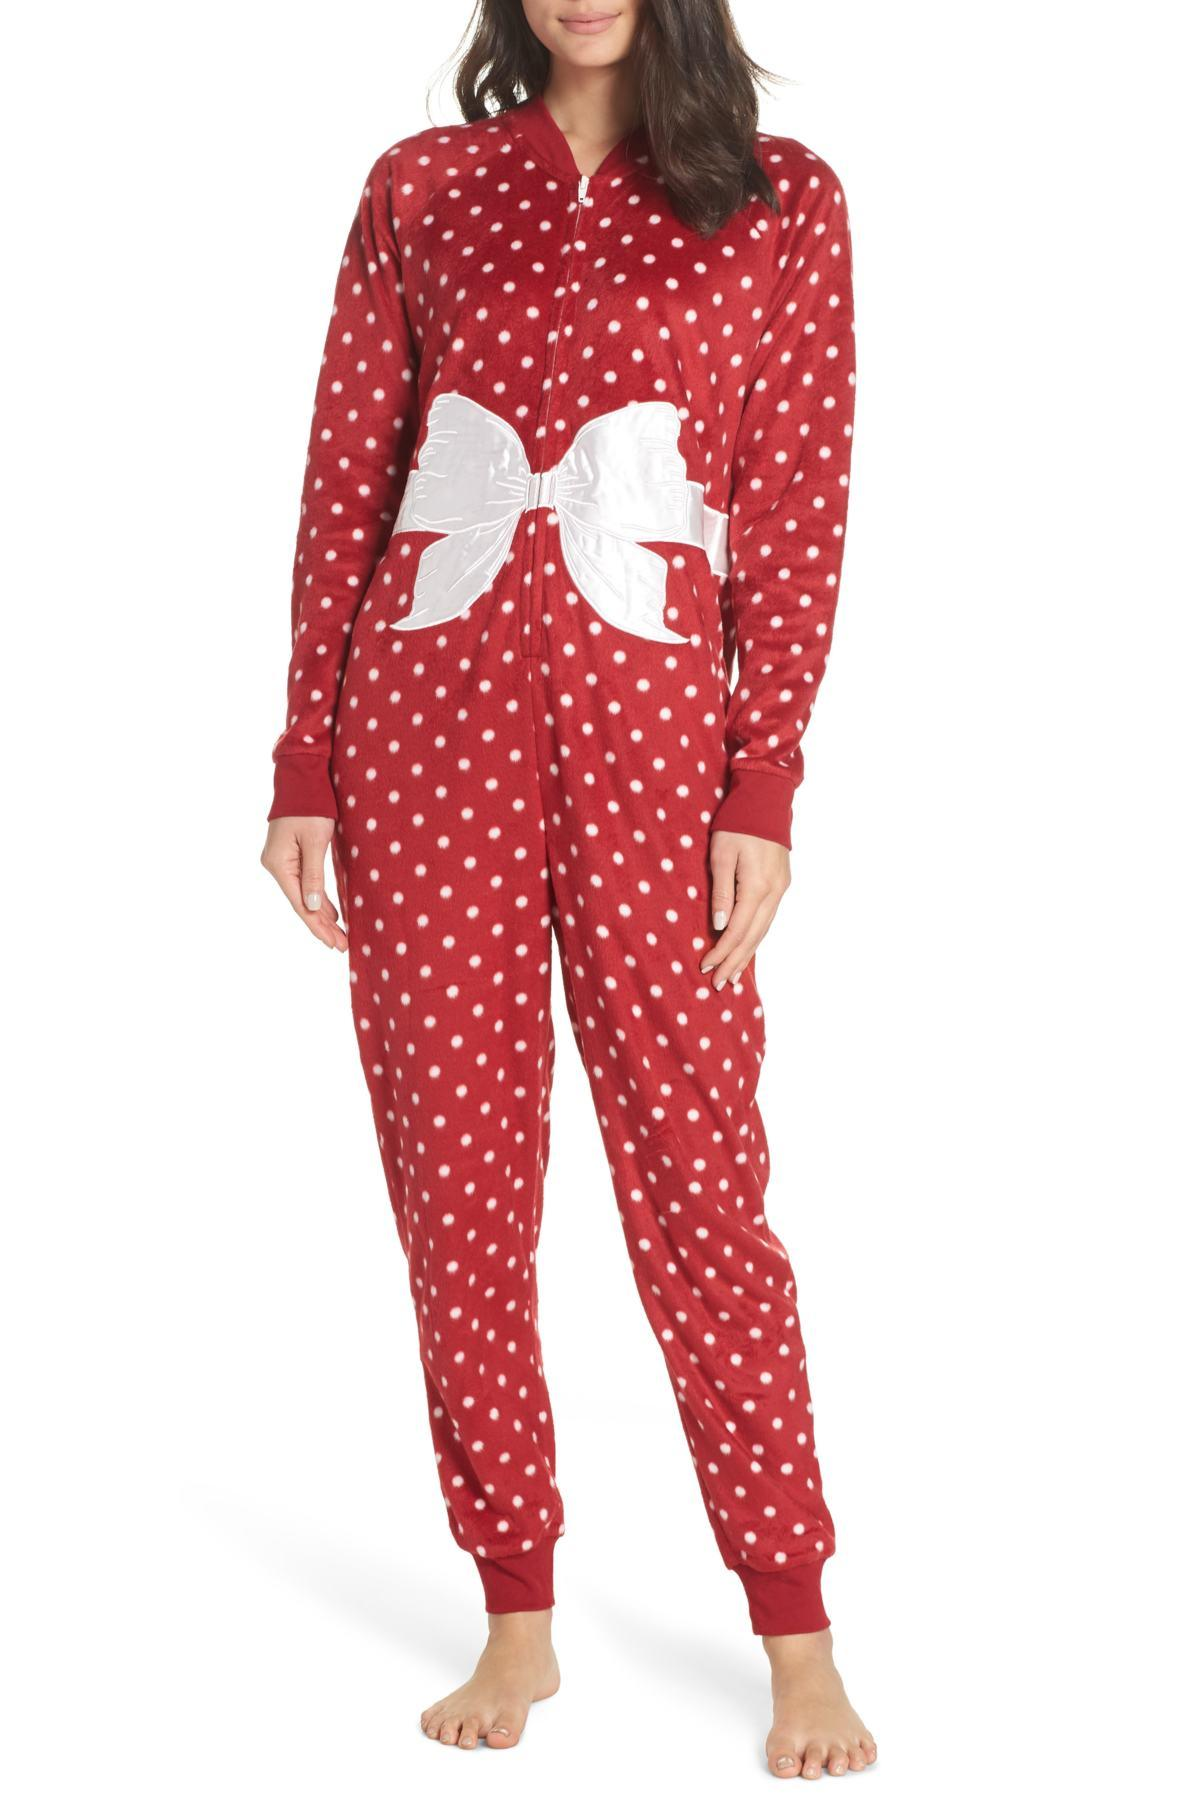 a56d1afeb4 Lyst - Cozy Zoe Holiday Fleece Jumpsuit in Red - Save 41%